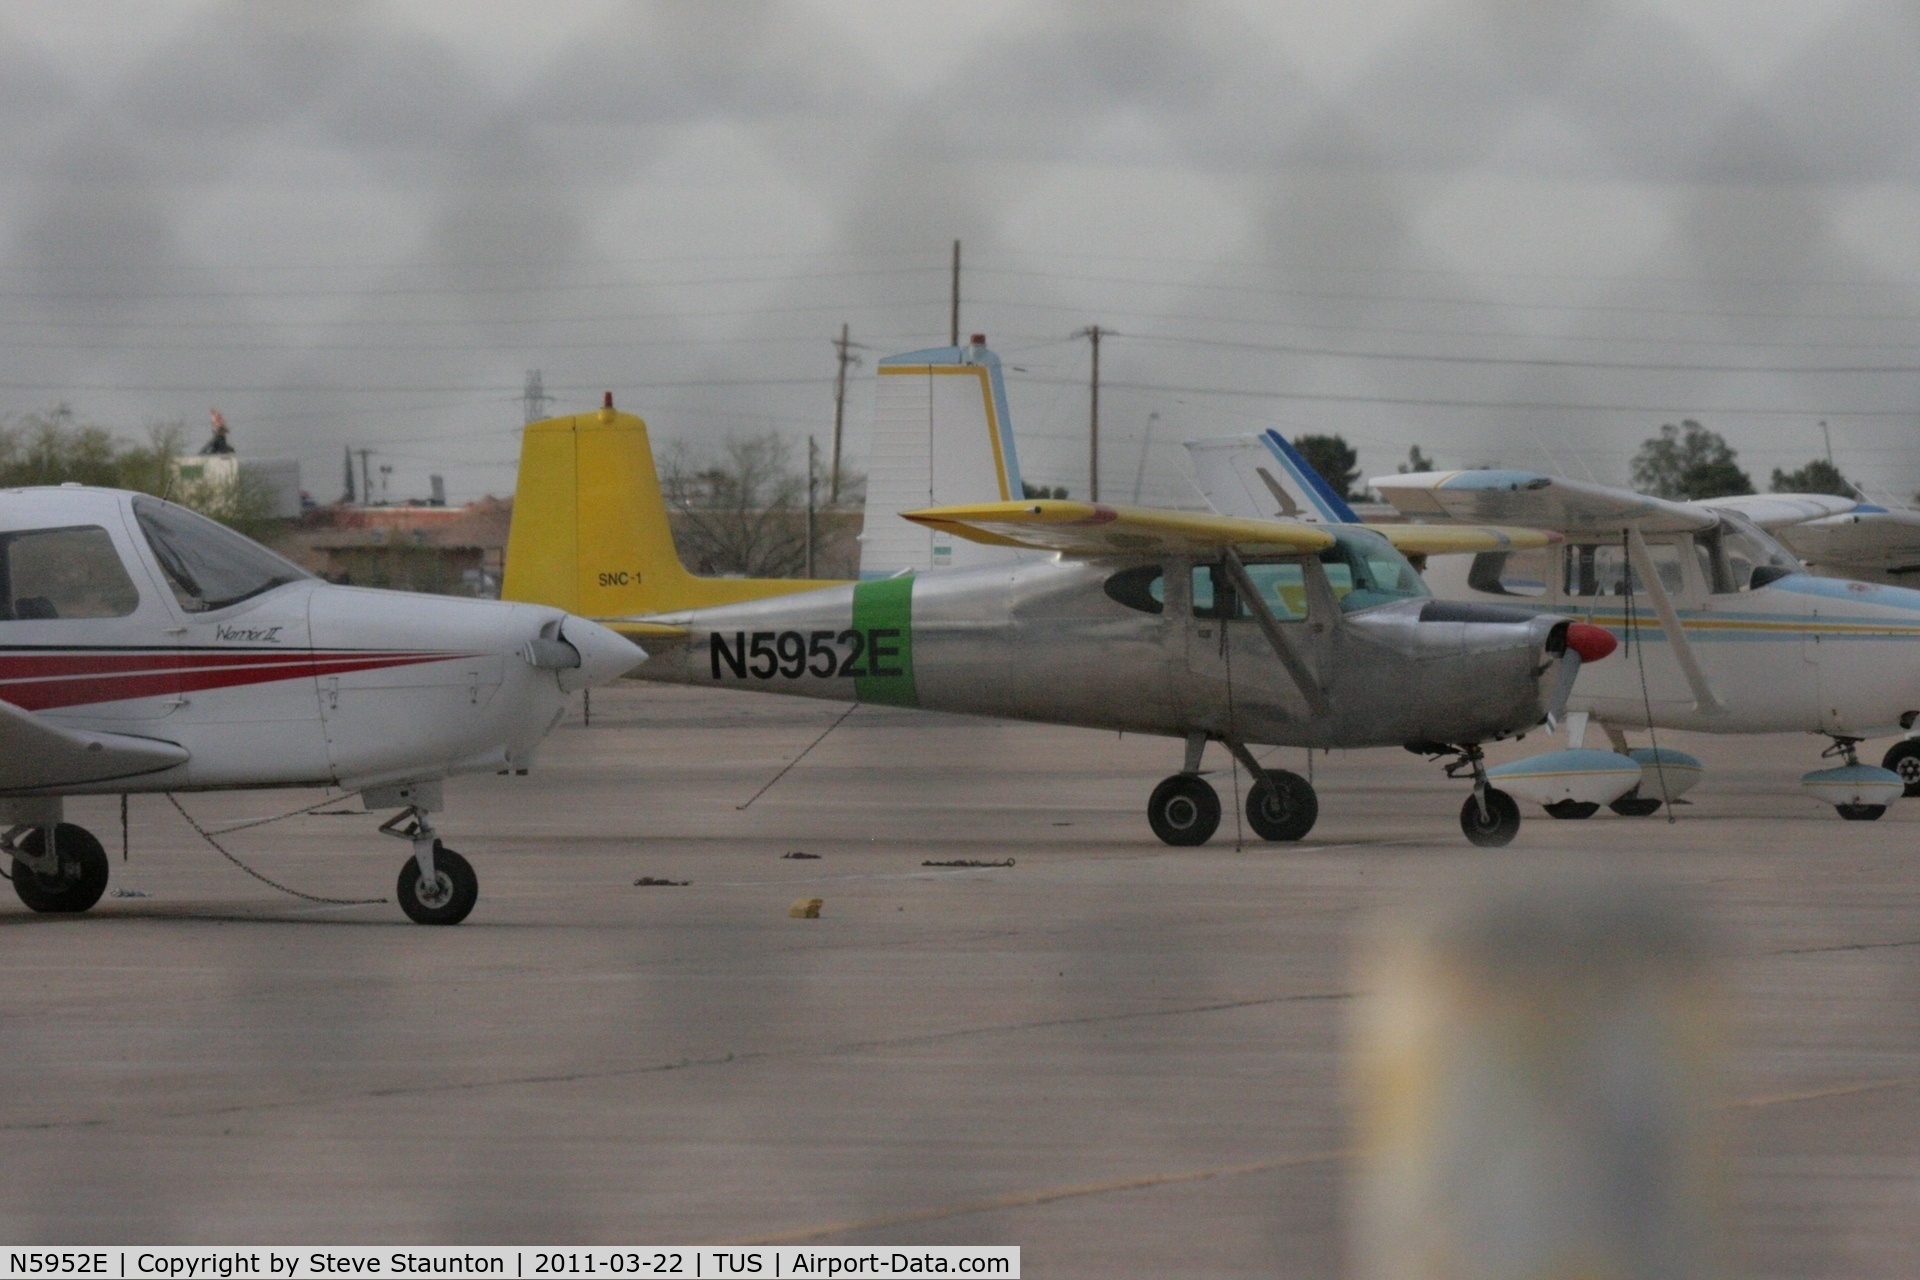 N5952E, 1959 Cessna 150 C/N 17452, Taken at Tucson International Airport, in March 2011 whilst on an Aeroprint Aviation tour